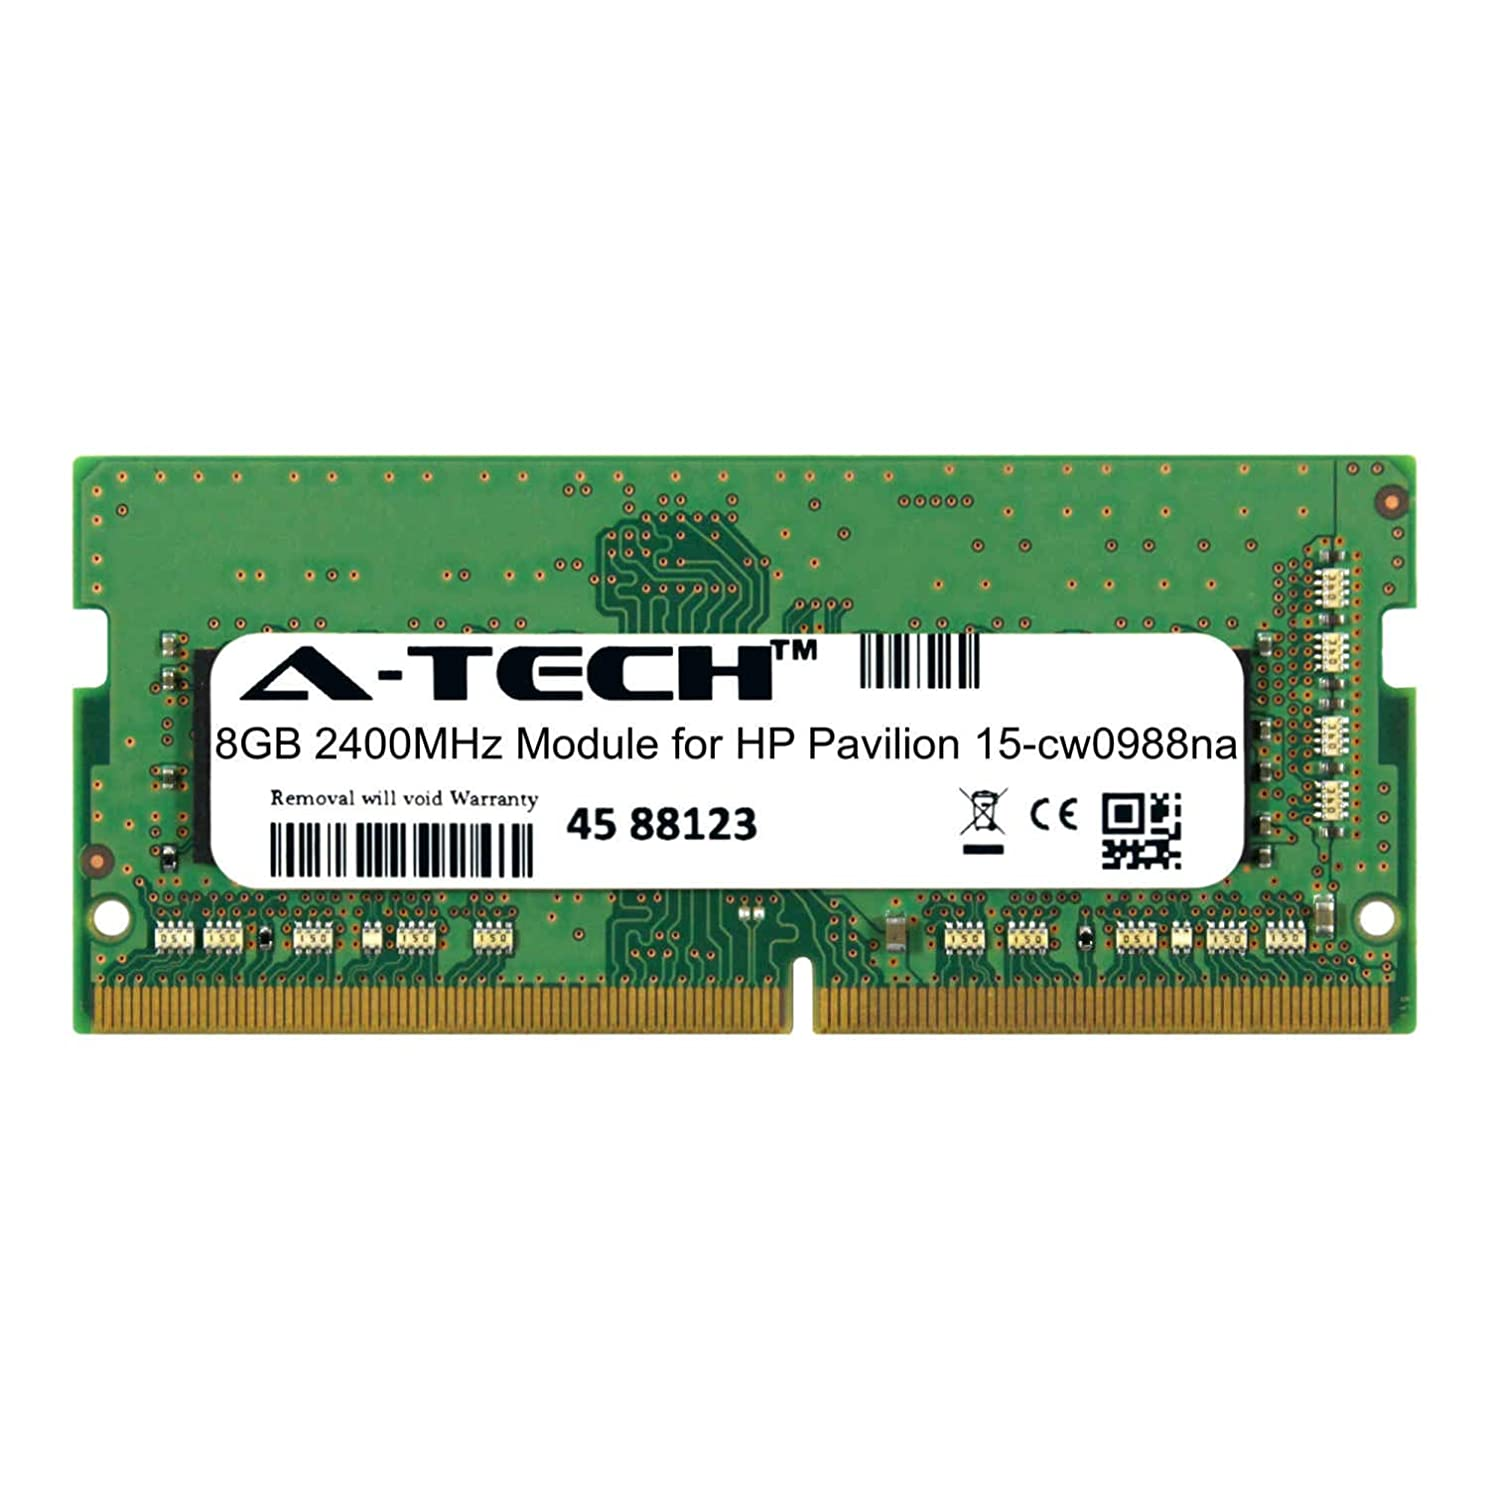 A-Tech 8GB Module for HP Pavilion 15-cw0988na Laptop & Notebook Compatible DDR4 2400Mhz Memory Ram (ATMS310271A25827X1)